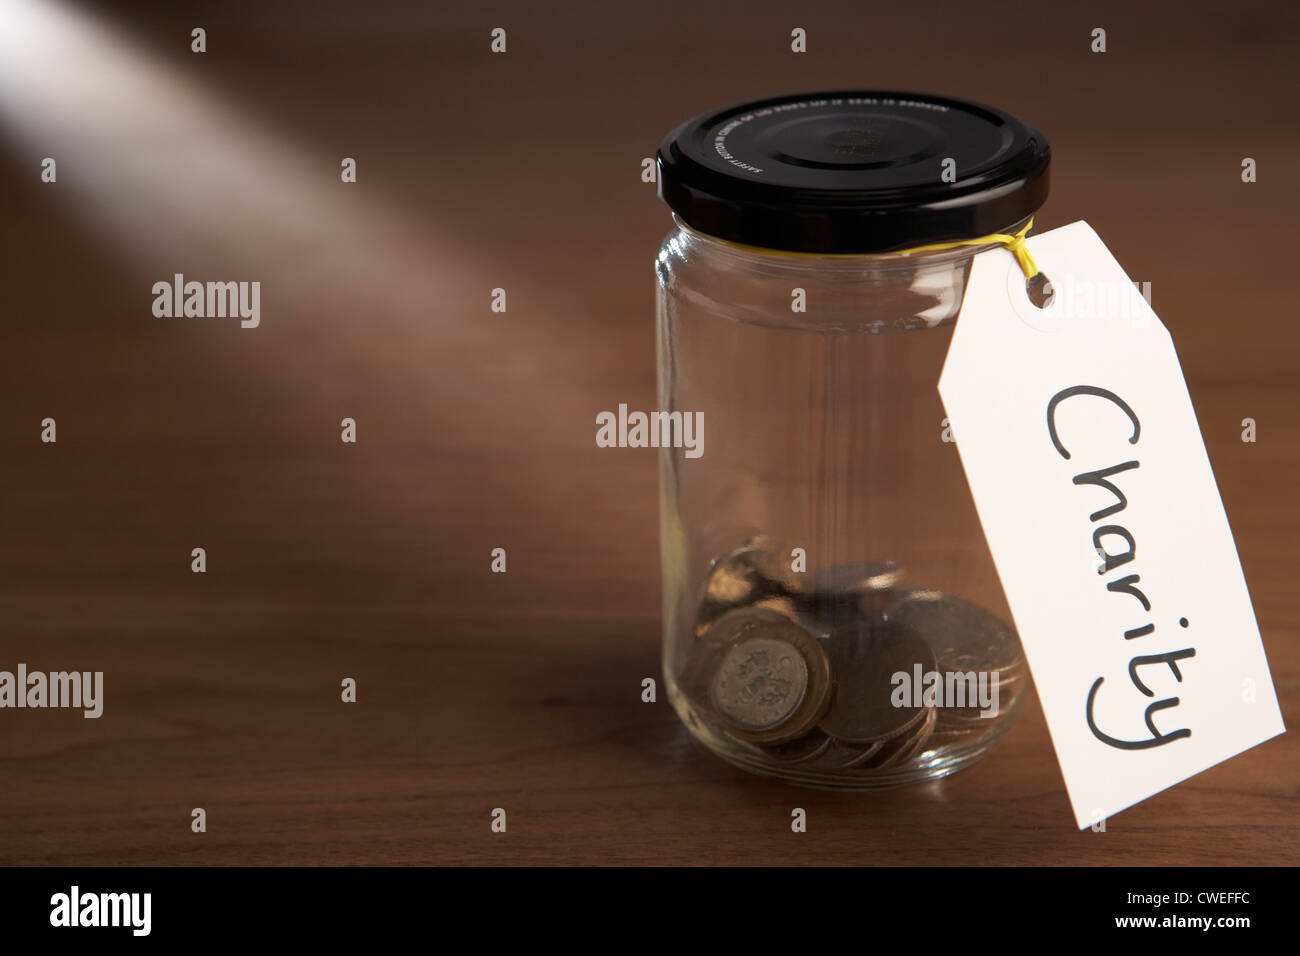 Coins in a jam jar - Stock Image